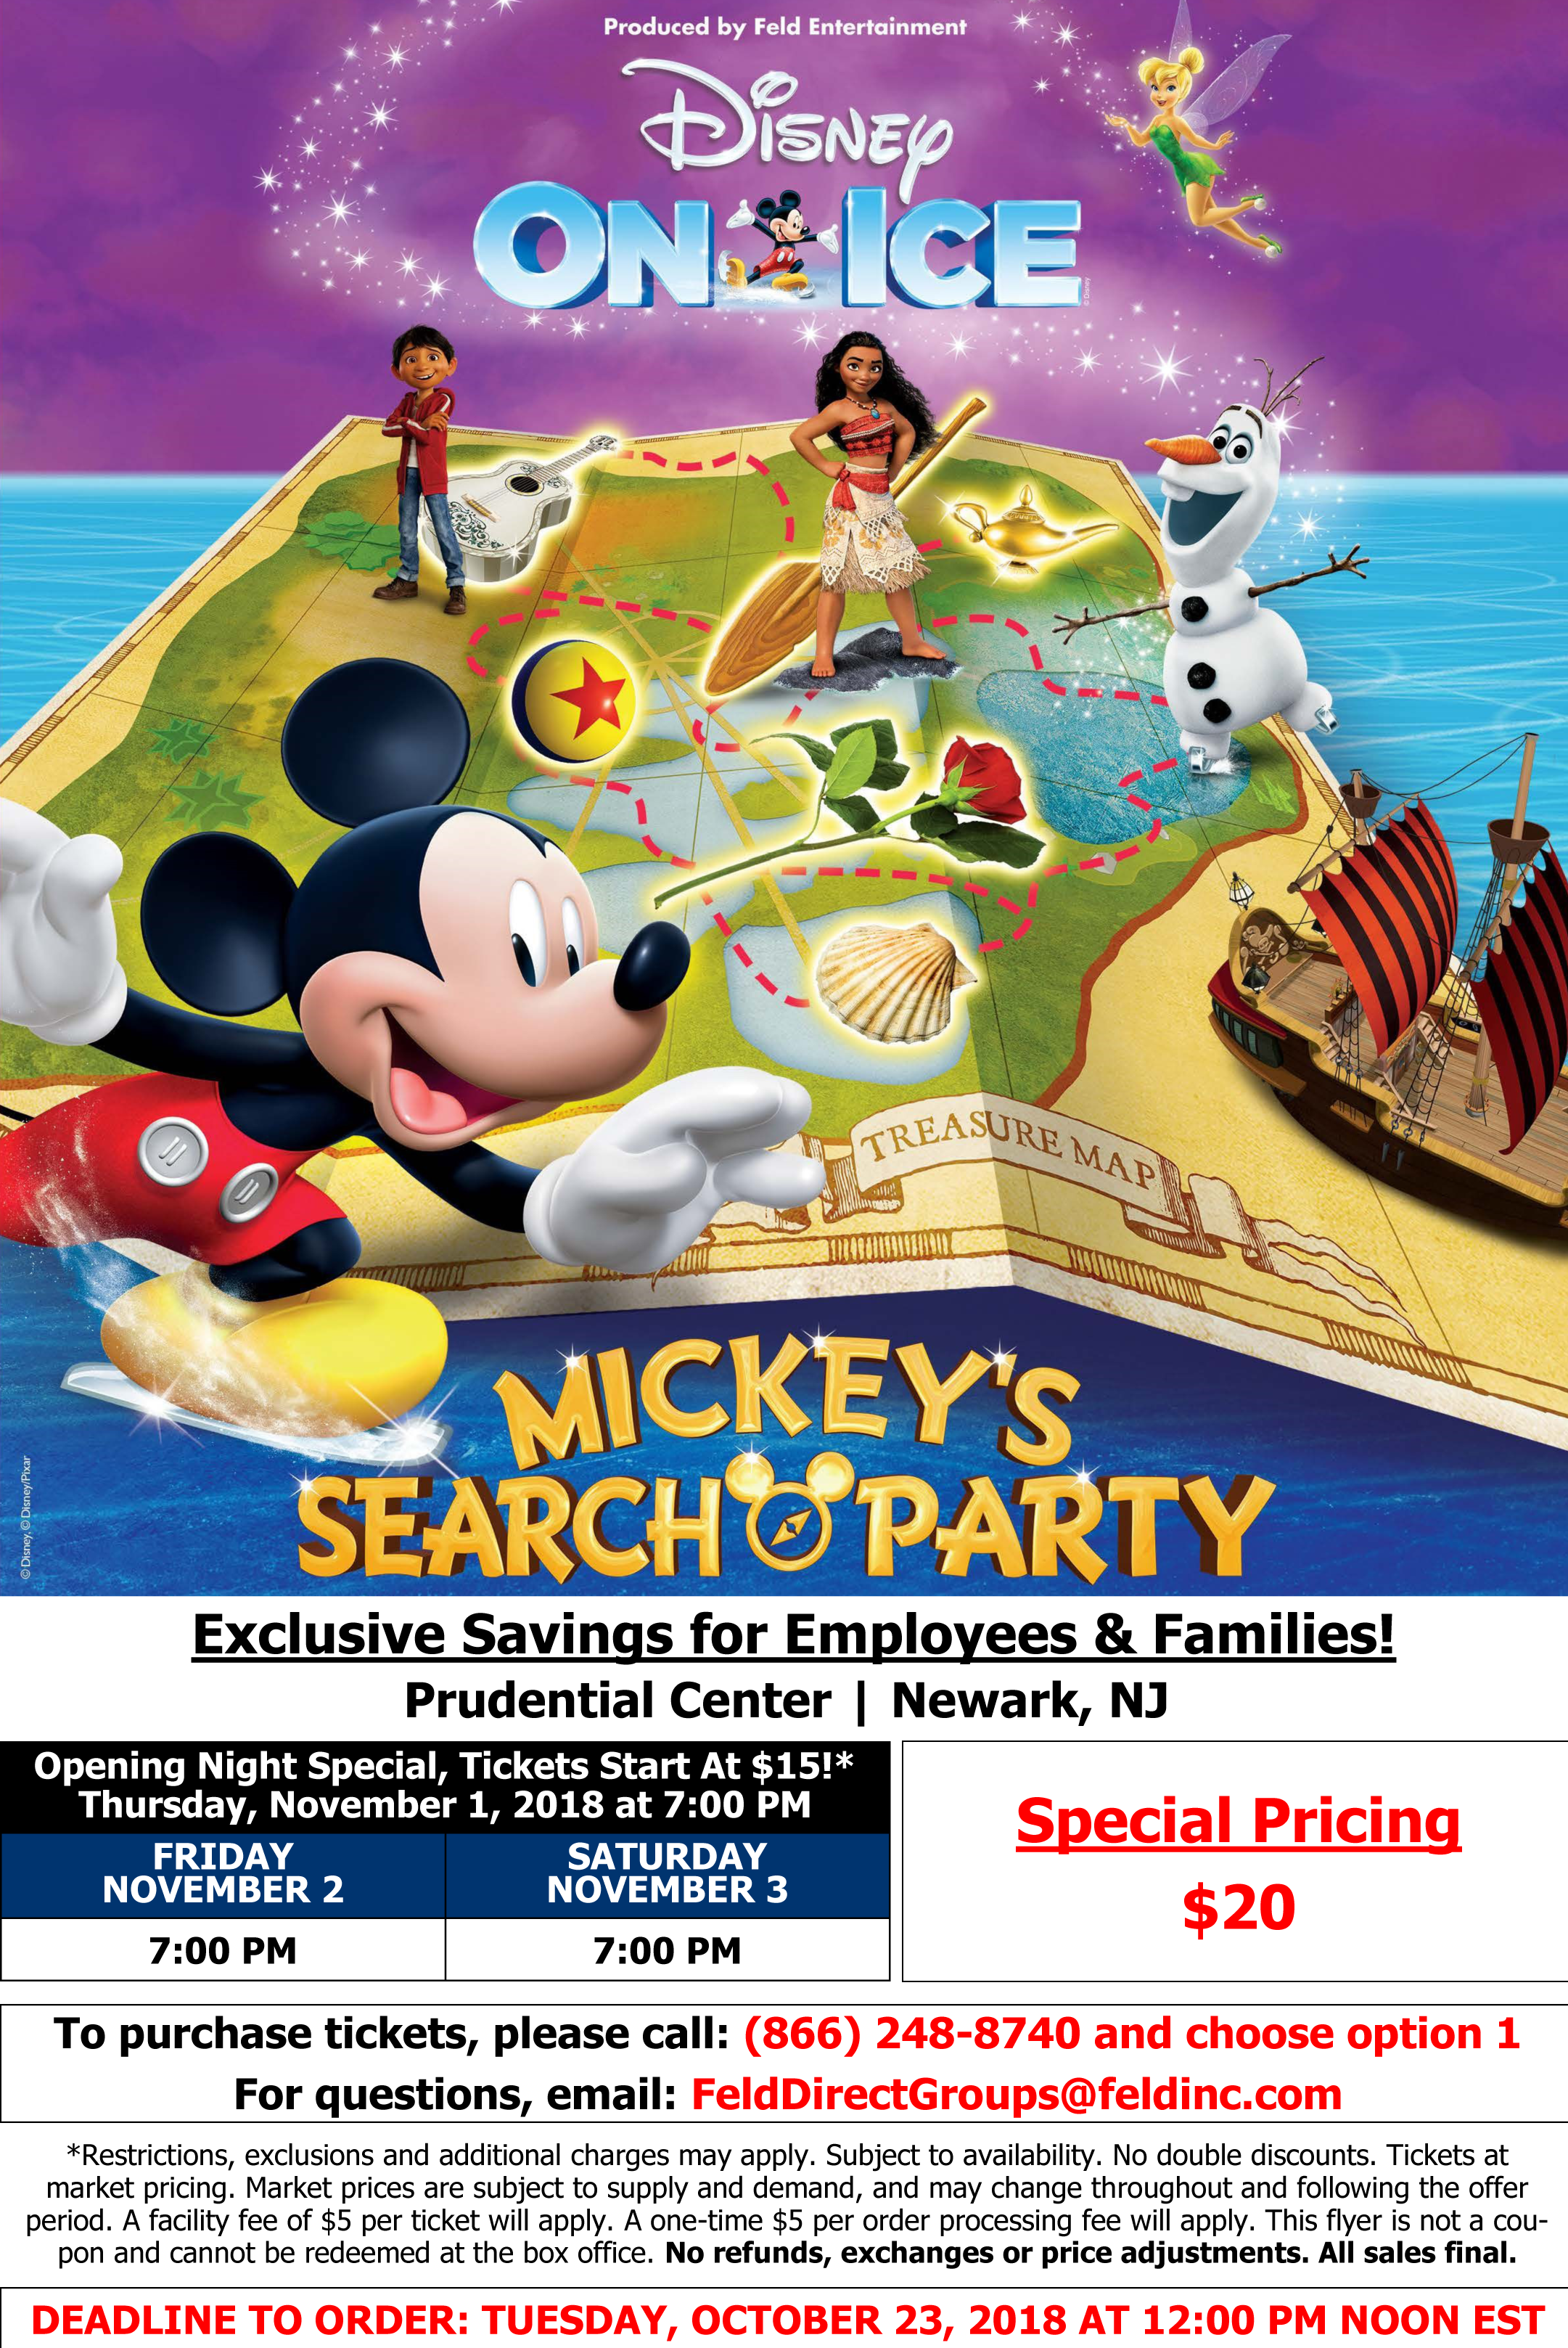 Disney On Ice: Mickey's Search Party - The Meadowlands ... on cast disney map, disney princess map, disney frozen map, pink map, disney dumbo map,